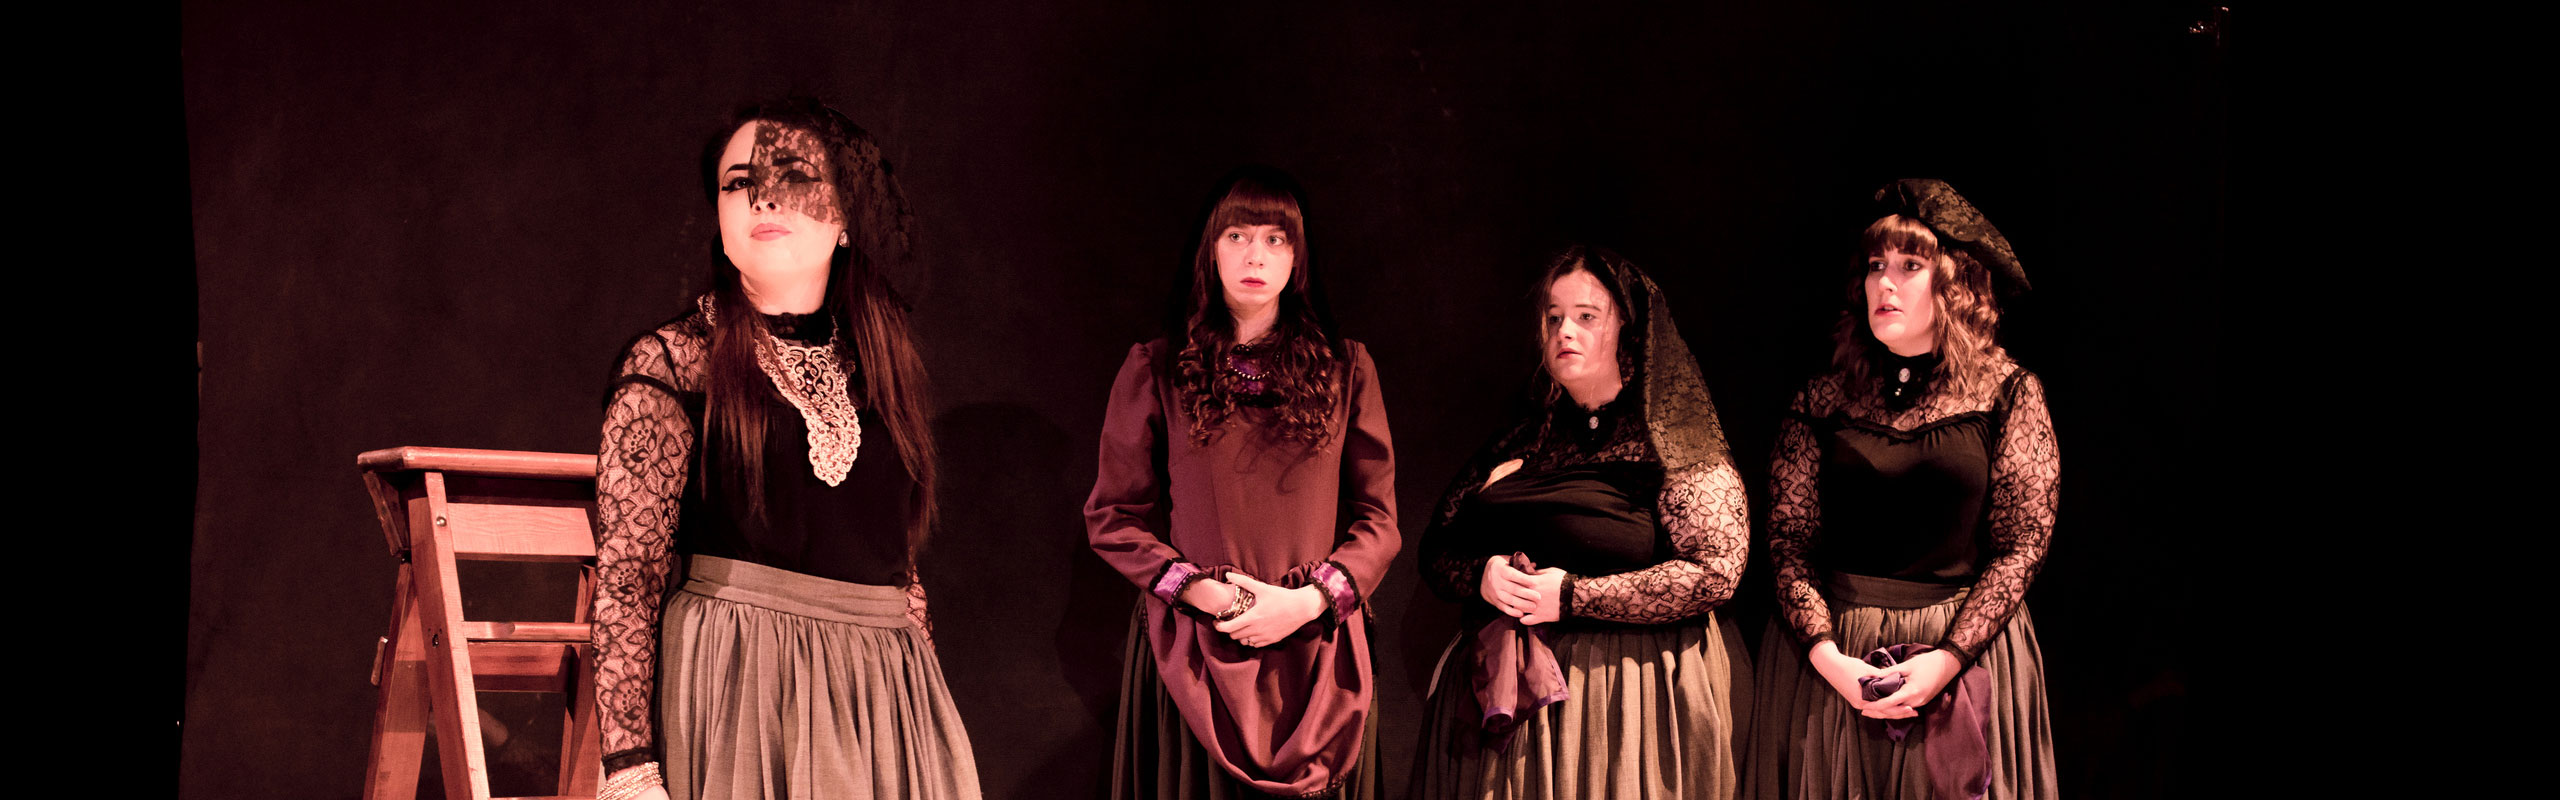 Four students standing acting during performance at Derby Theatre